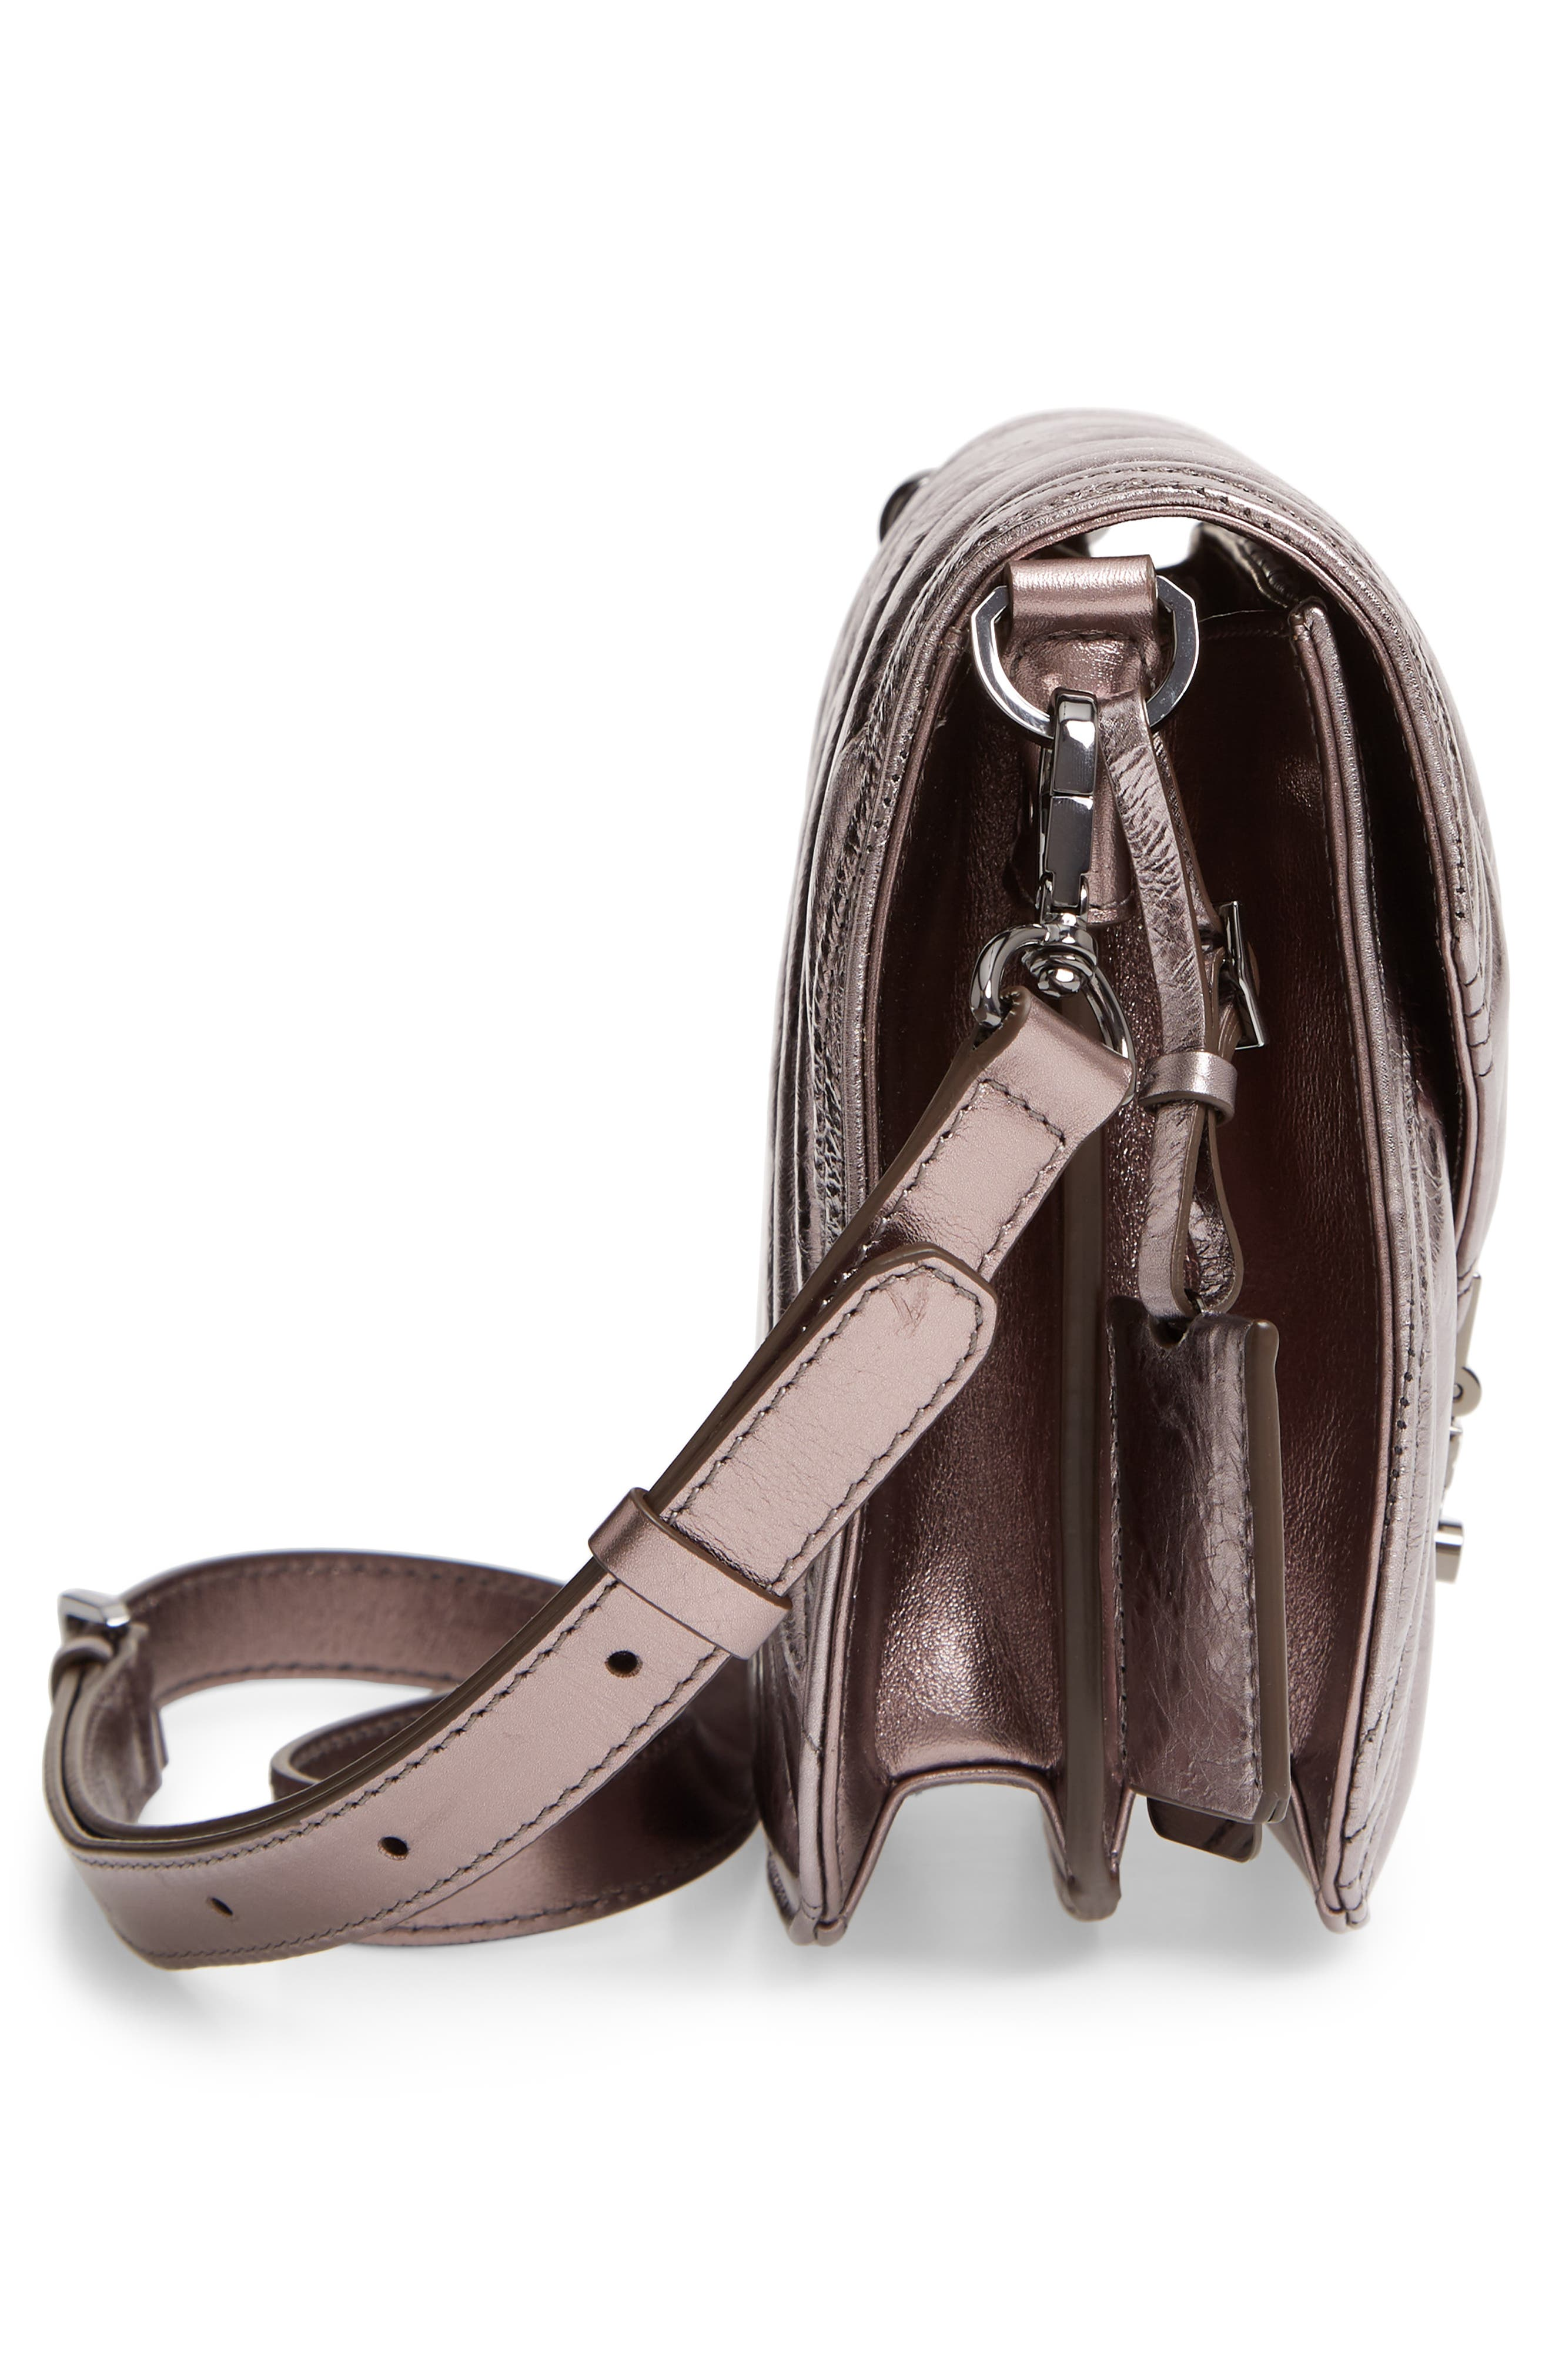 Patricia Quilted Metallic Leather Saddle Bag,                             Alternate thumbnail 5, color,                             BERLIN SILVER